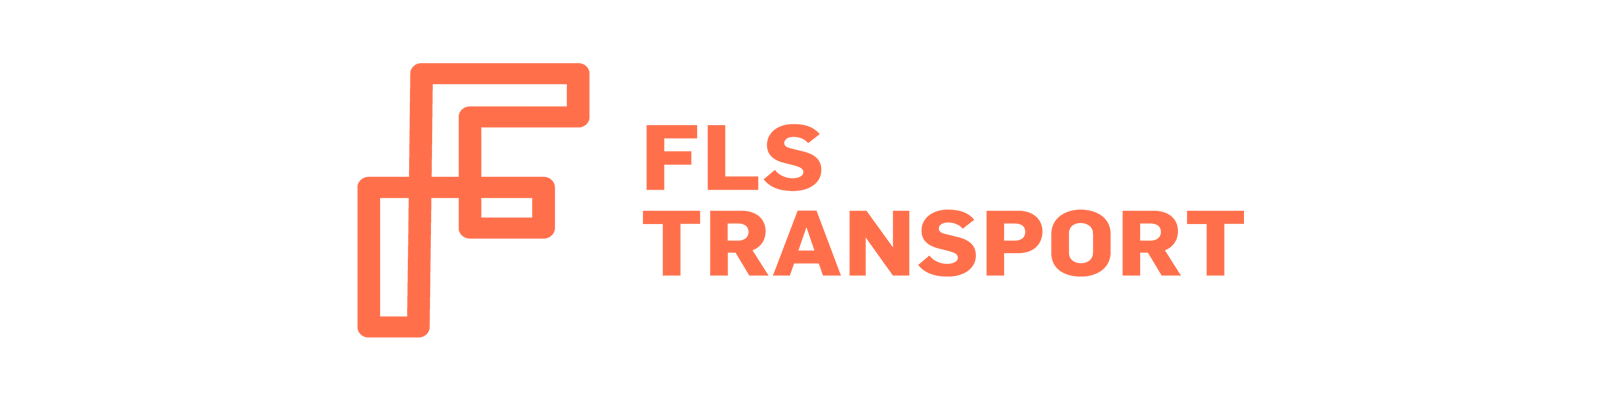 FLS Transportation Logo Design